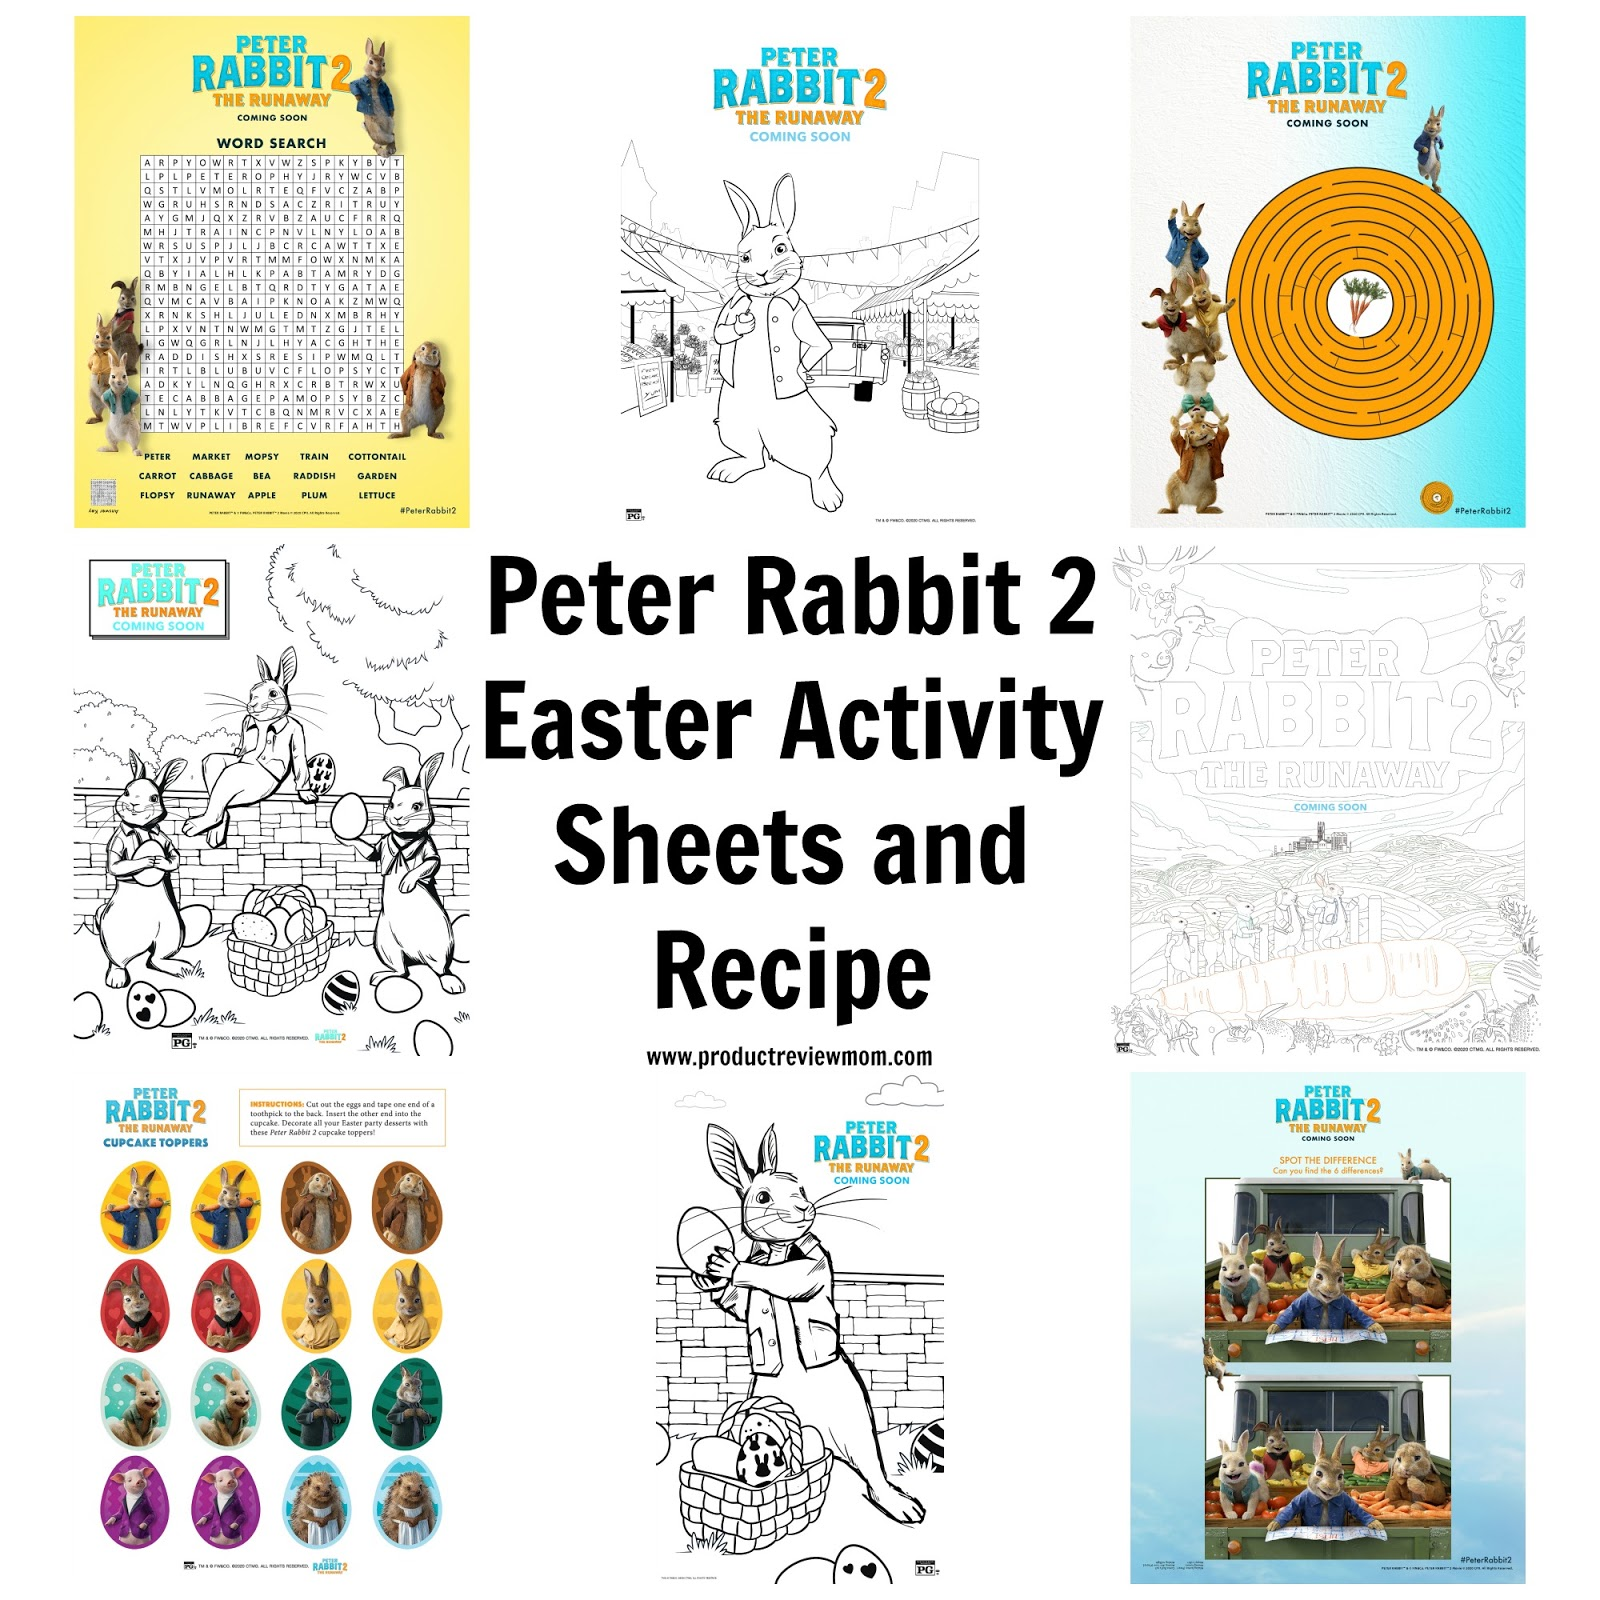 Peter Rabbit 2 Easter Activity Sheets and Recipe